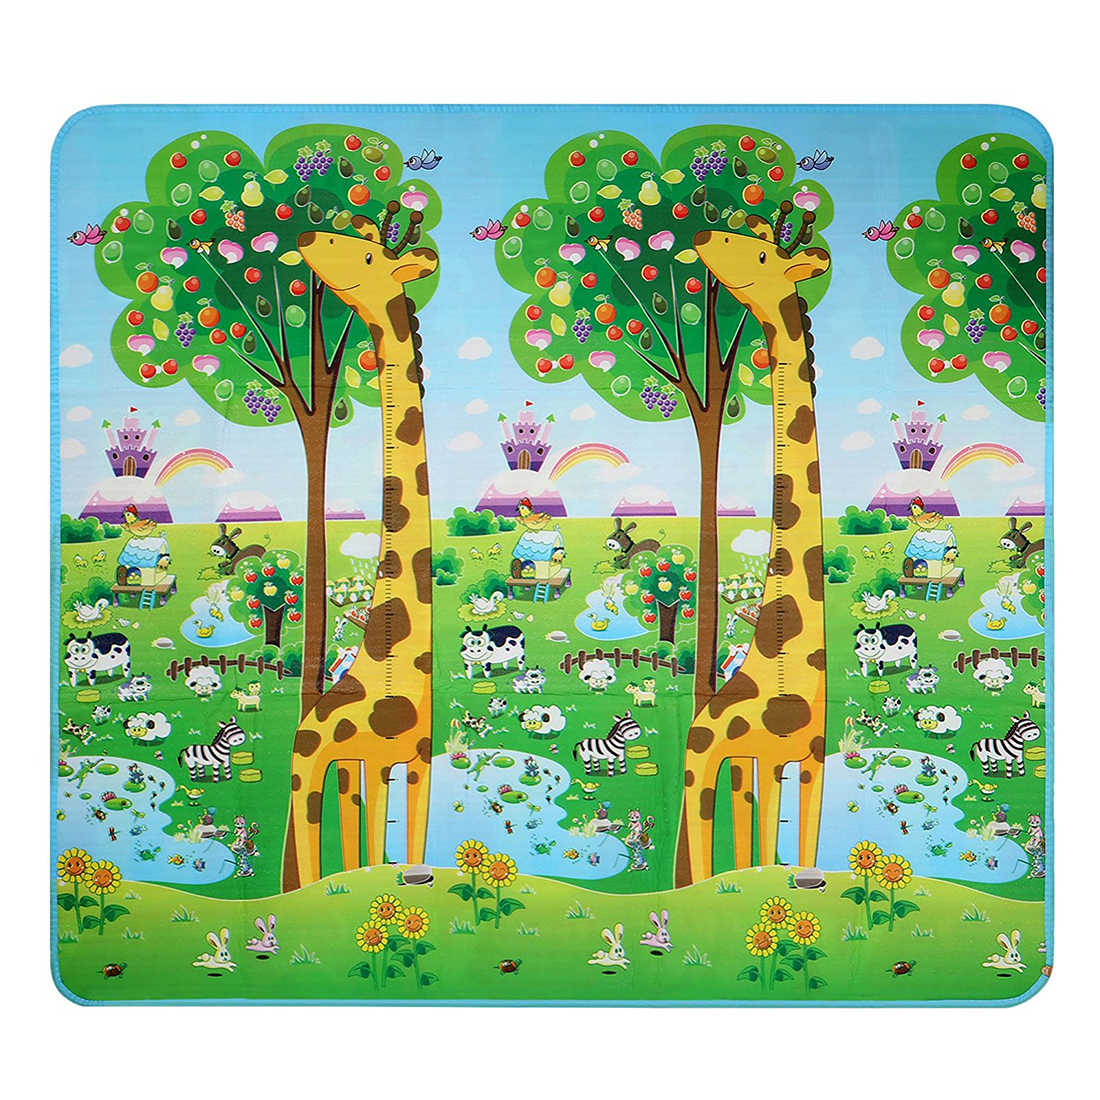 2018 New Baby Kid Toddler Play Crawl Mat Carpet Foam Blanket Rug for In/Out Doors